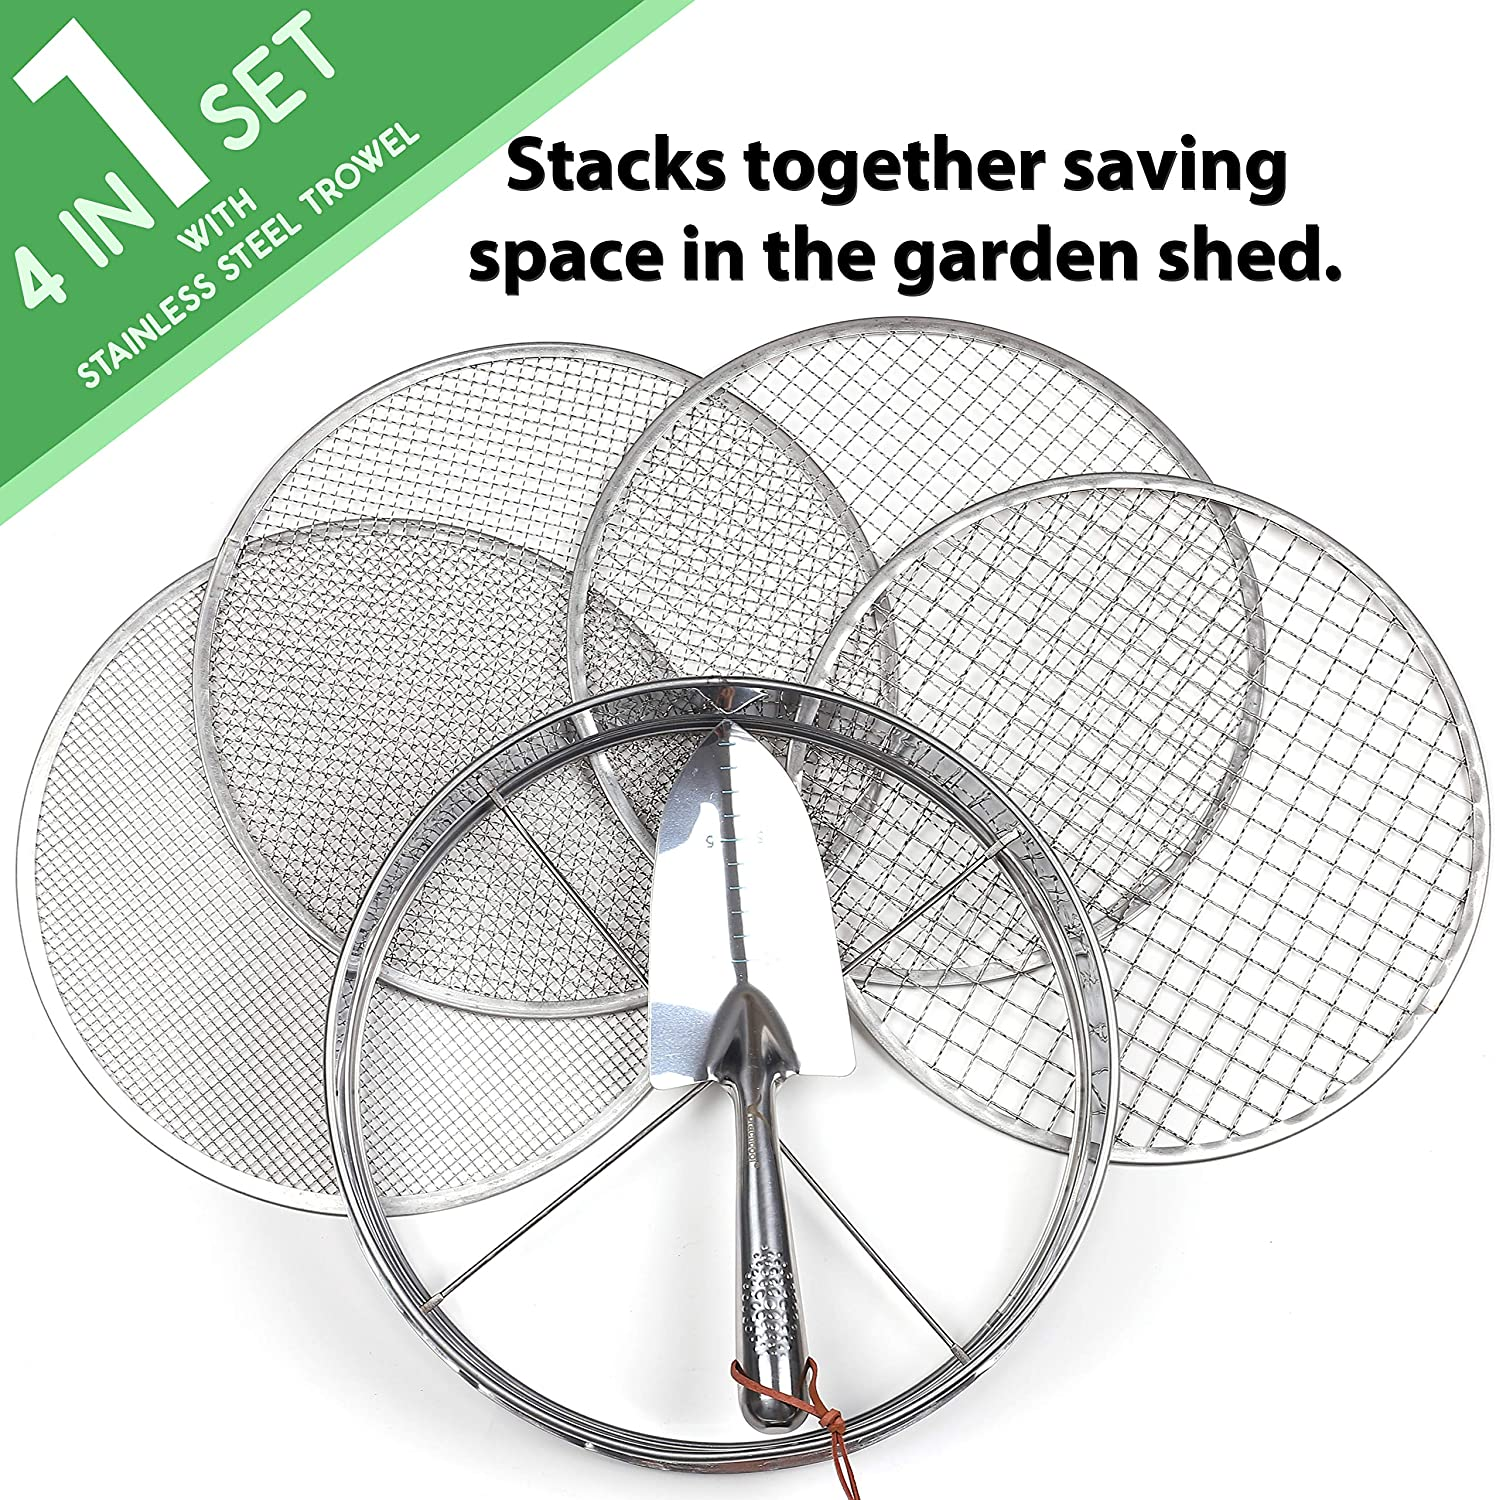 stainless steel riddle 3,6,9,12 mm and bonus spade soil sifting pan Practicool garden potting mix sieve with 4 interchangeable filter mesh sizes